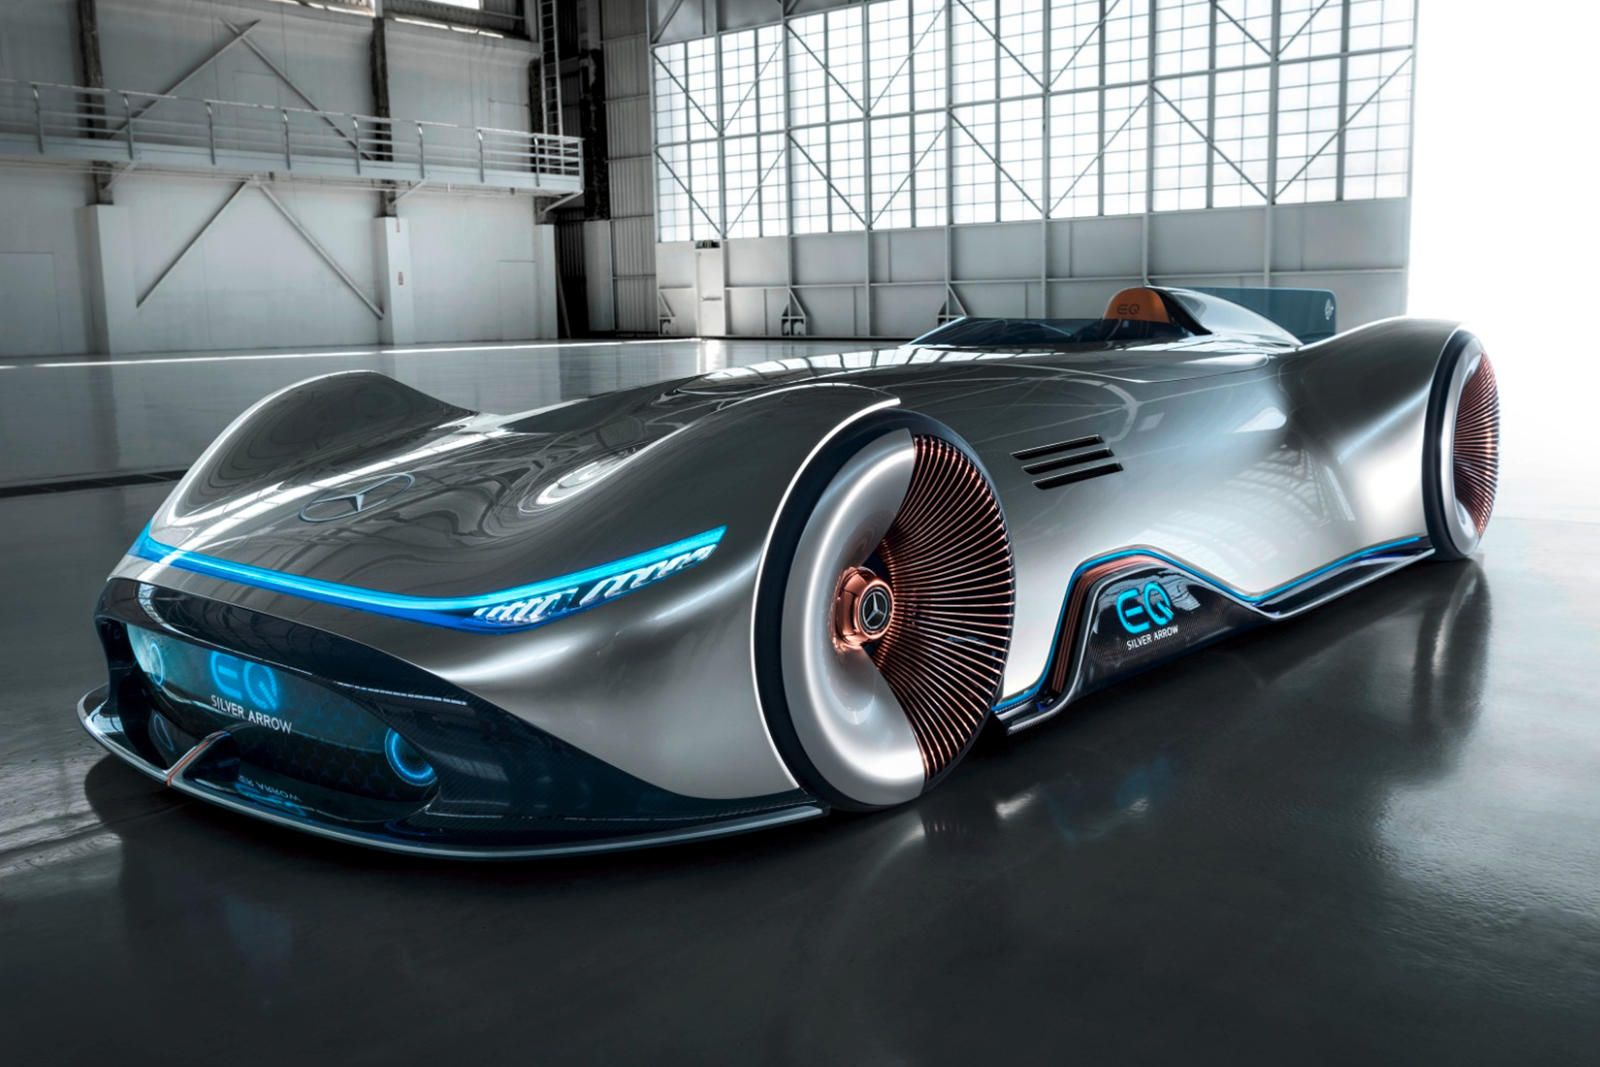 Mercedes Vision Eq Silver Arrow Is A Stunning 750 Hp Electric Speedster Future Concept Cars Mercedes Maybach Benz